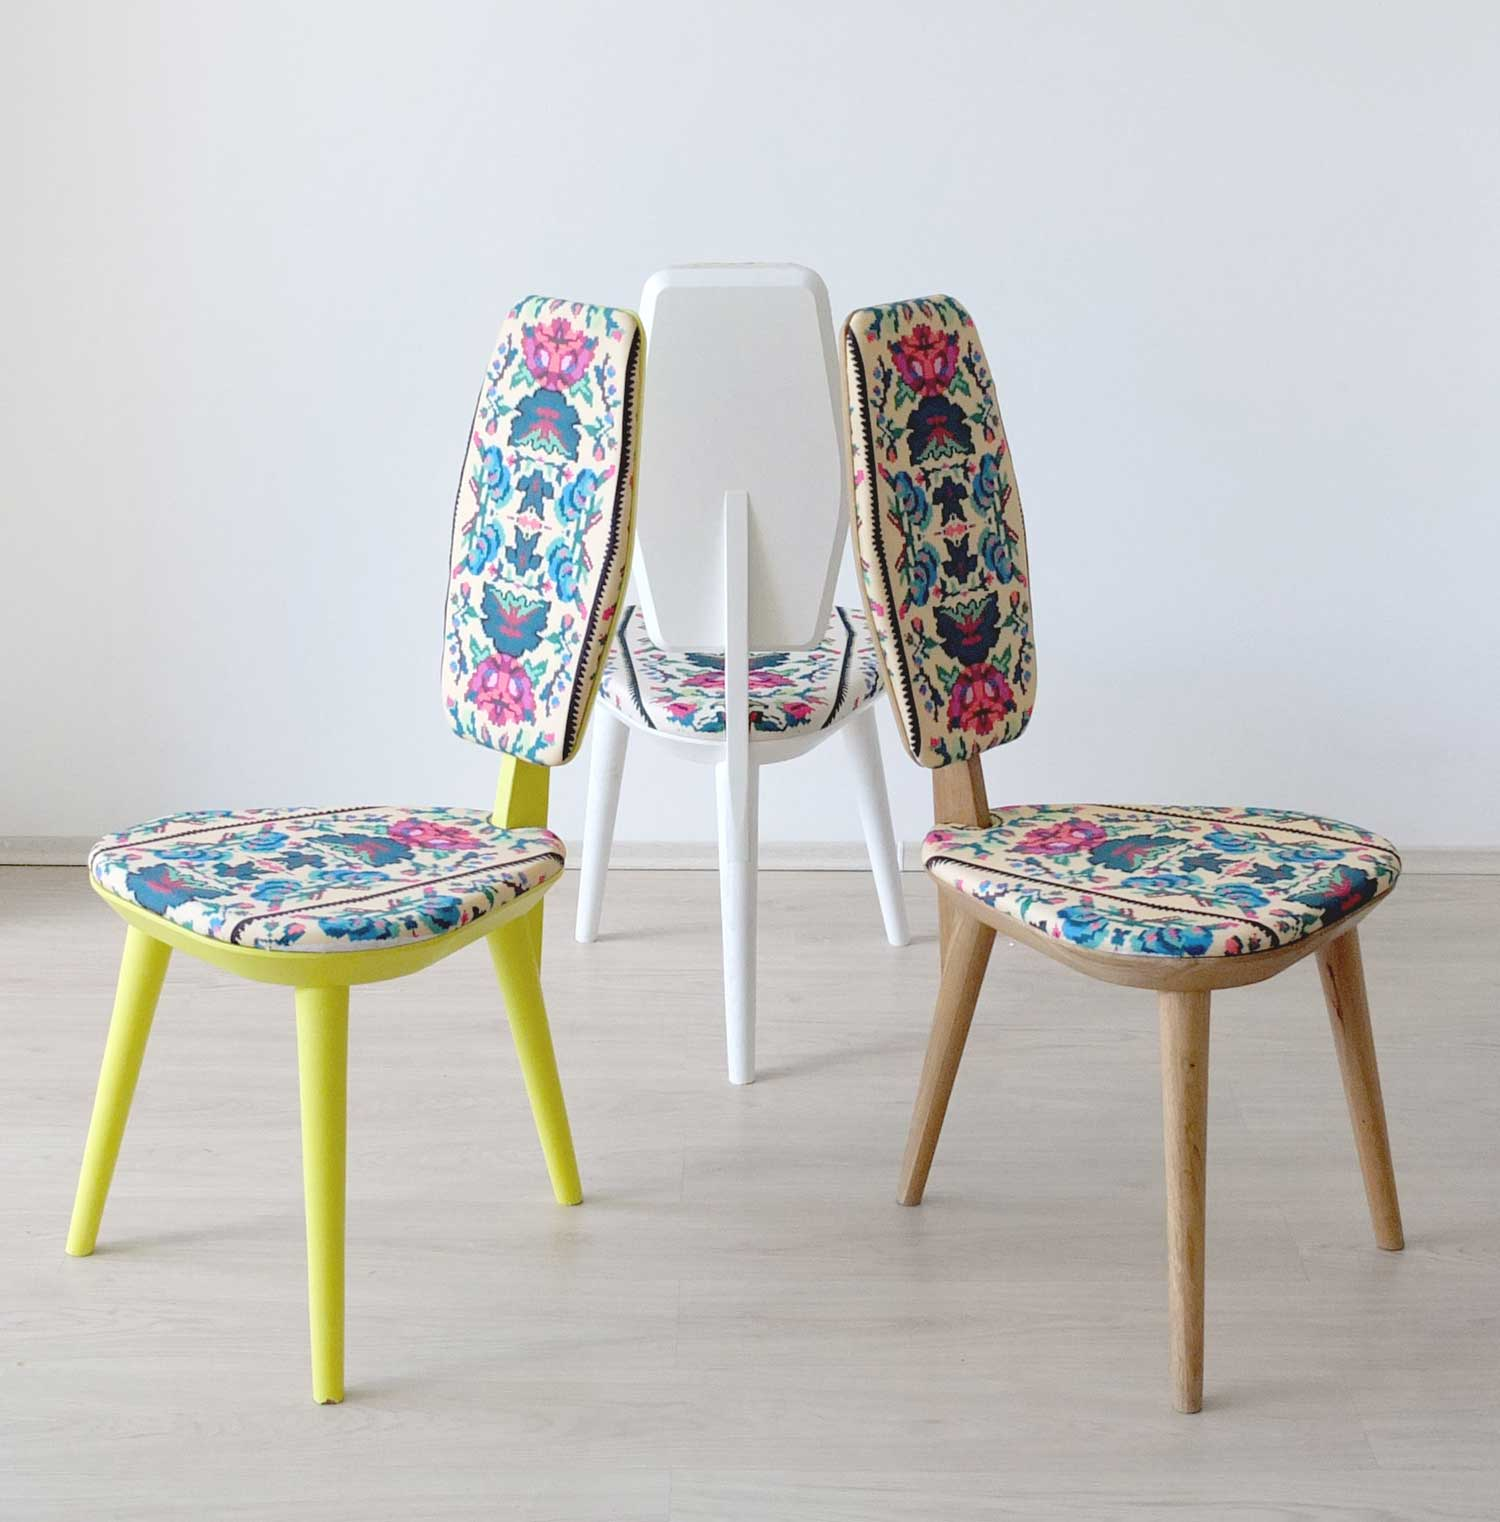 Chair Design by Lana Dumitru for Photoliu | Yellowtrace